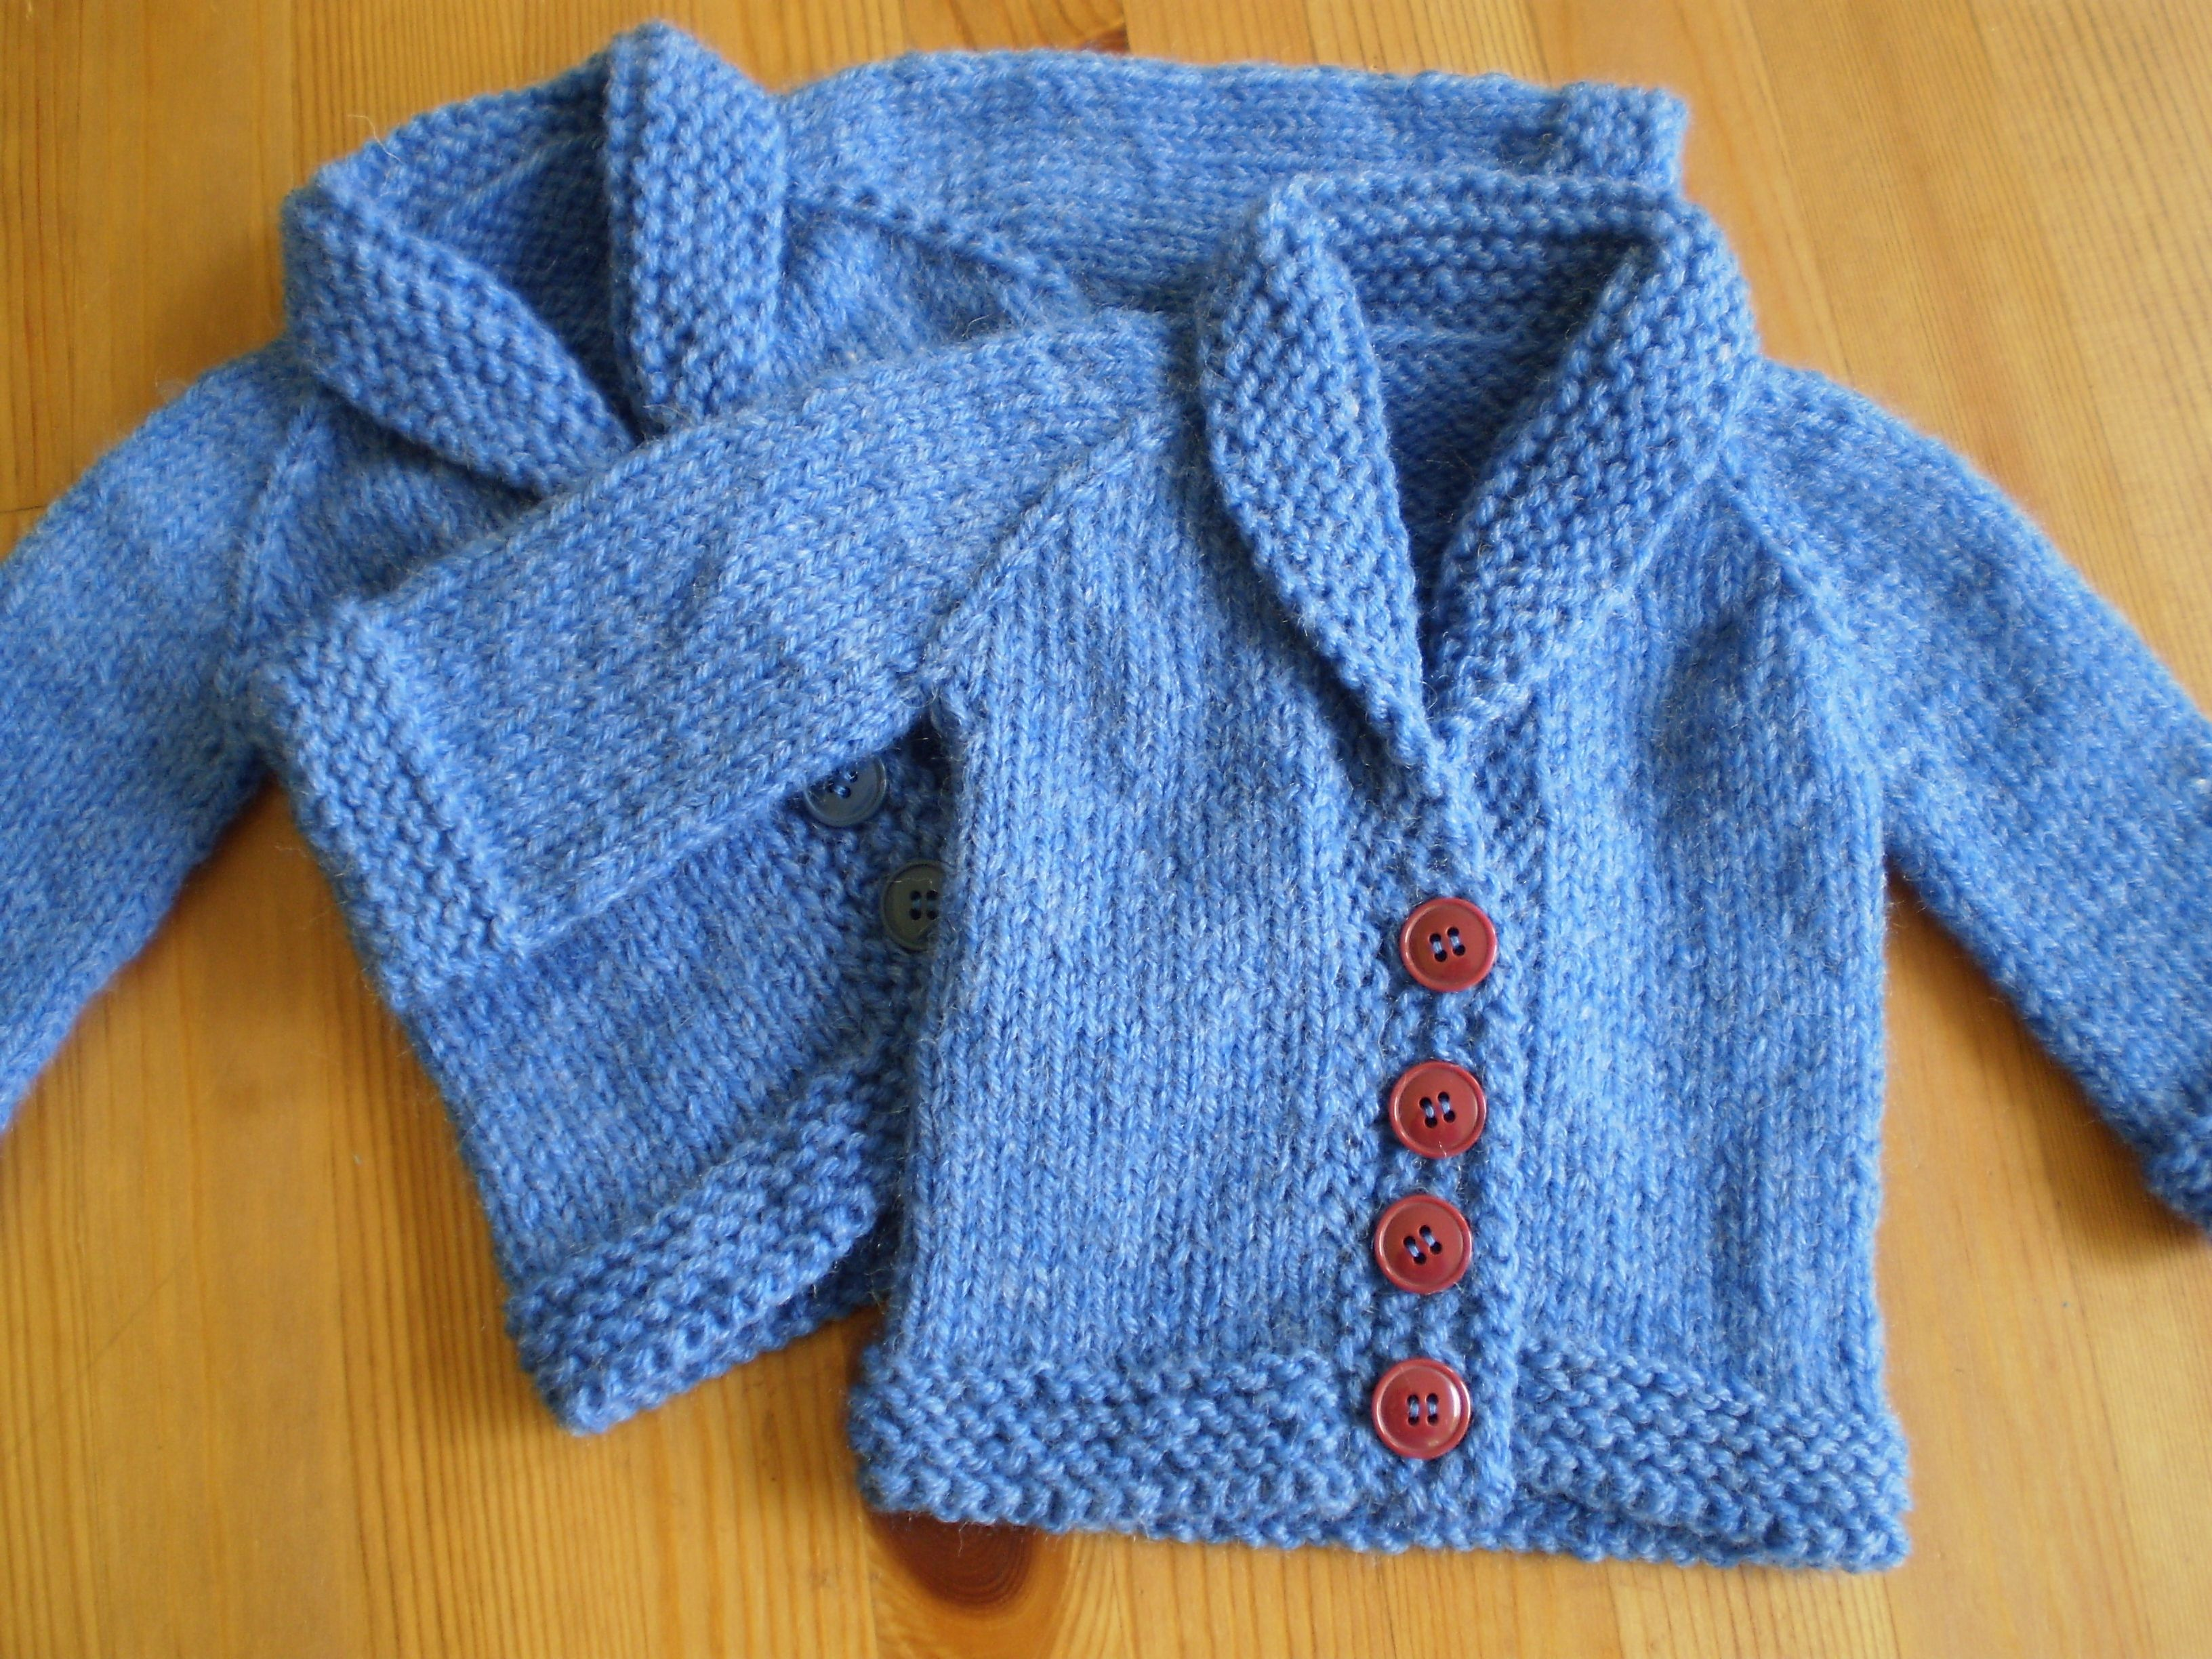 Pattern Spotlight On The Needles Baby Cardigan